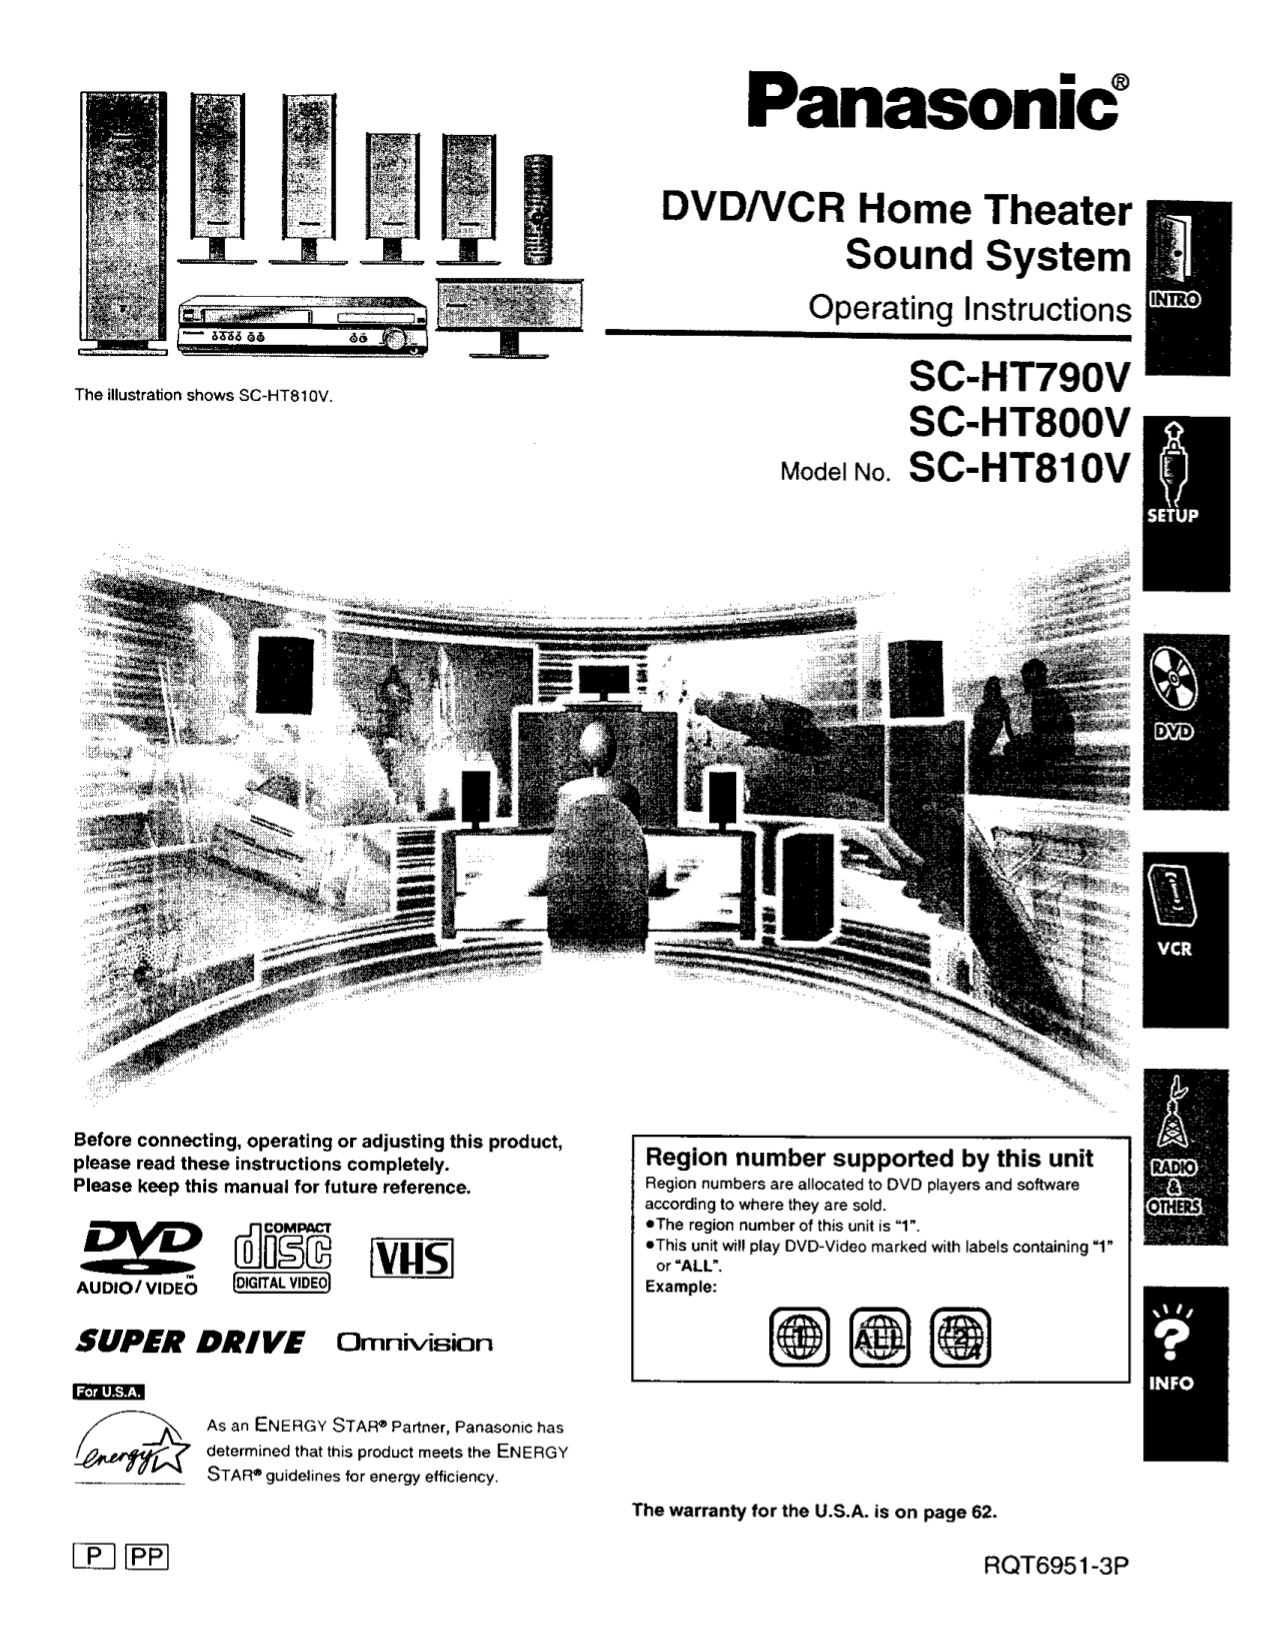 Download free pdf for Panasonic SA-HT810 Home Theater manual